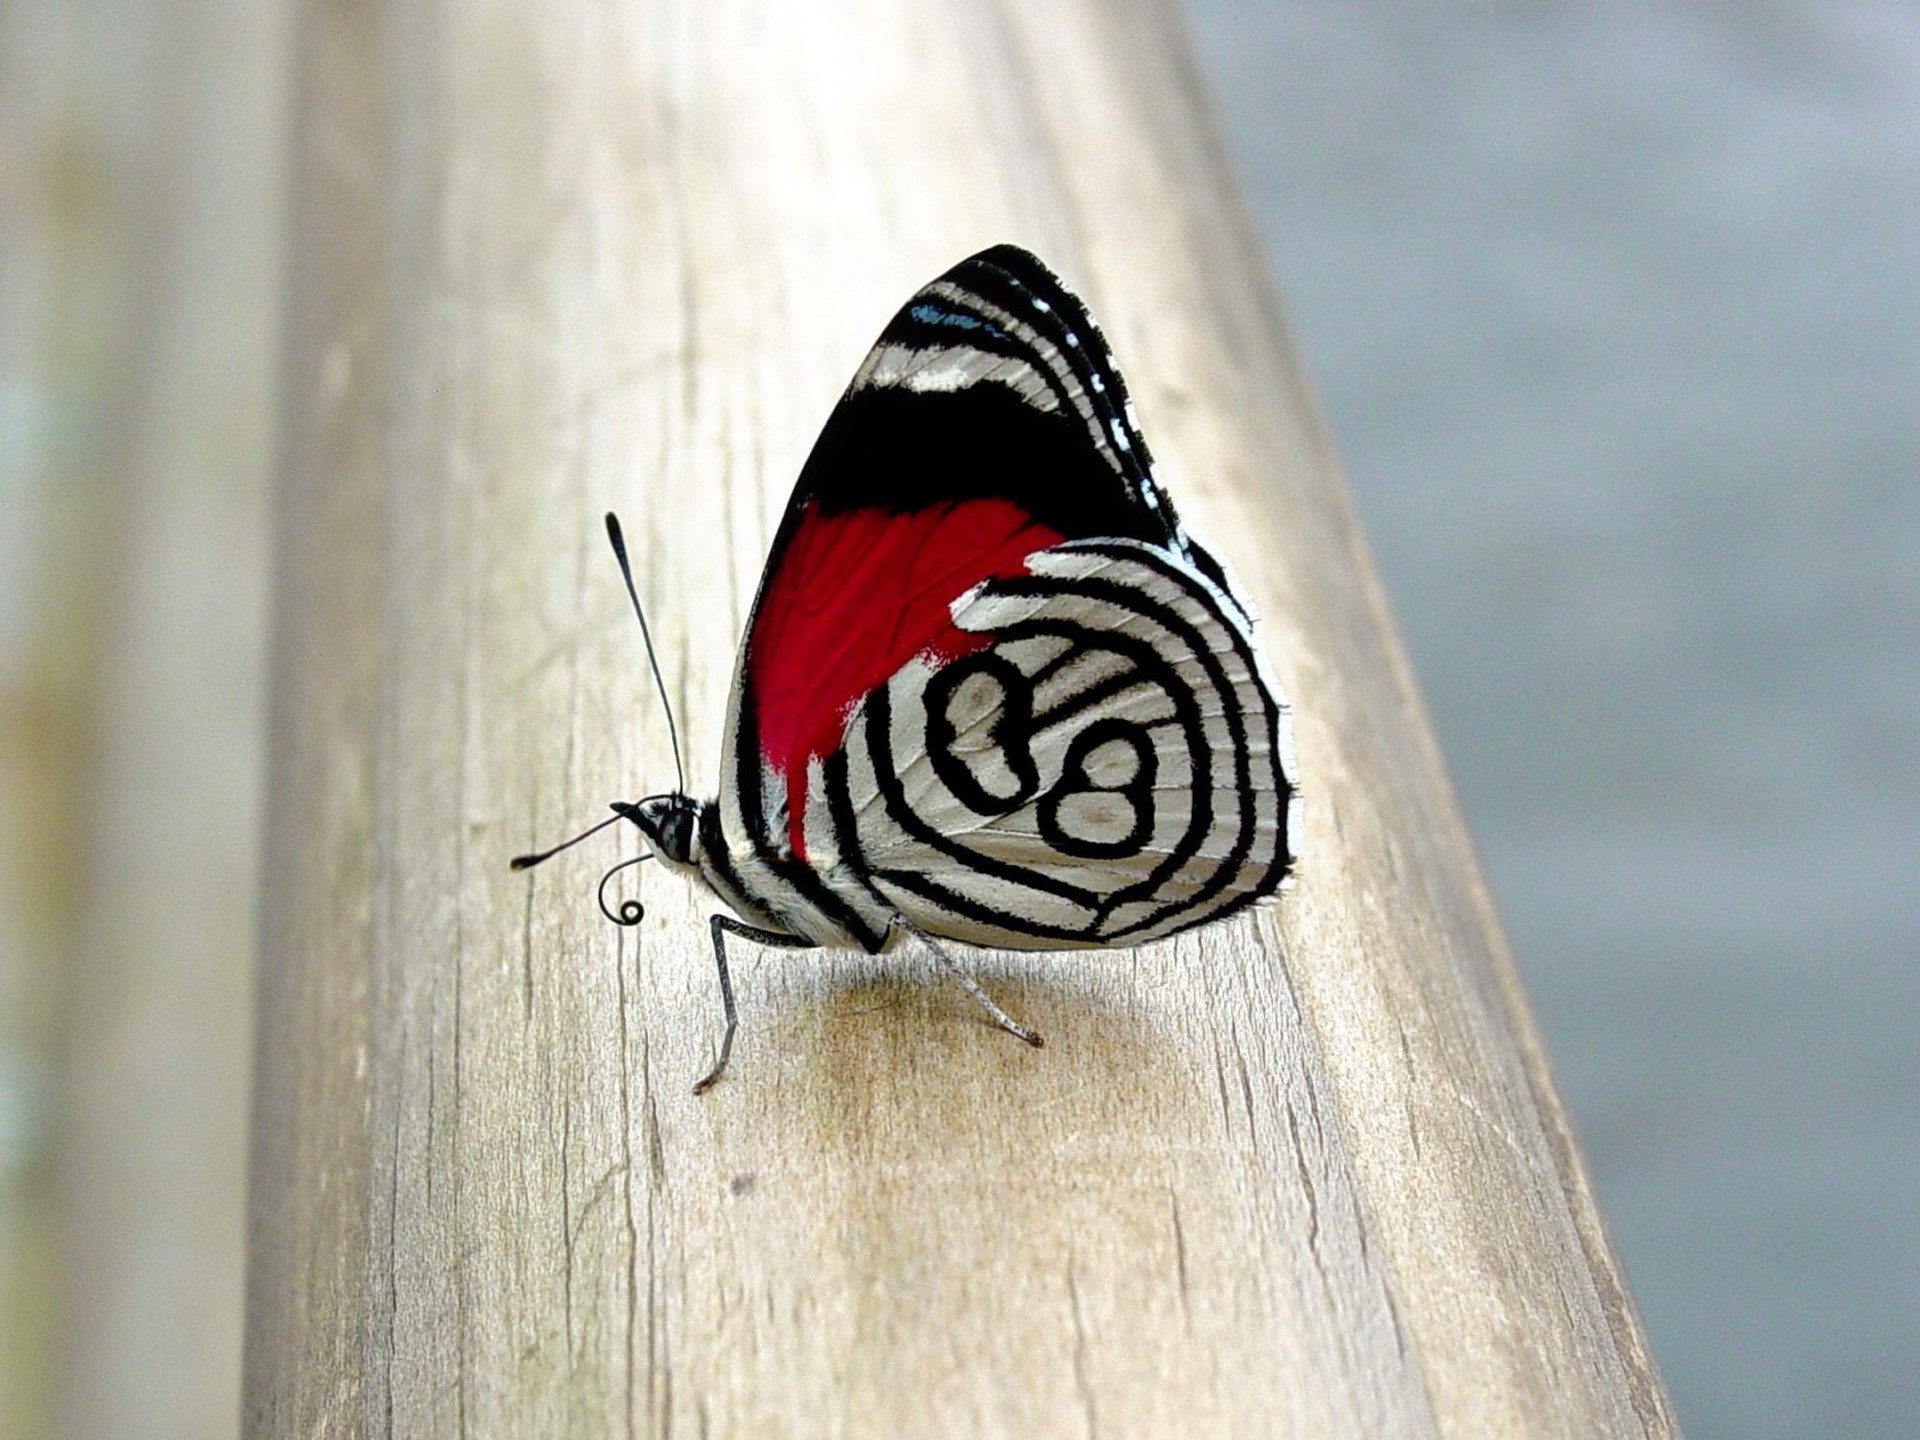 hd butterfly images